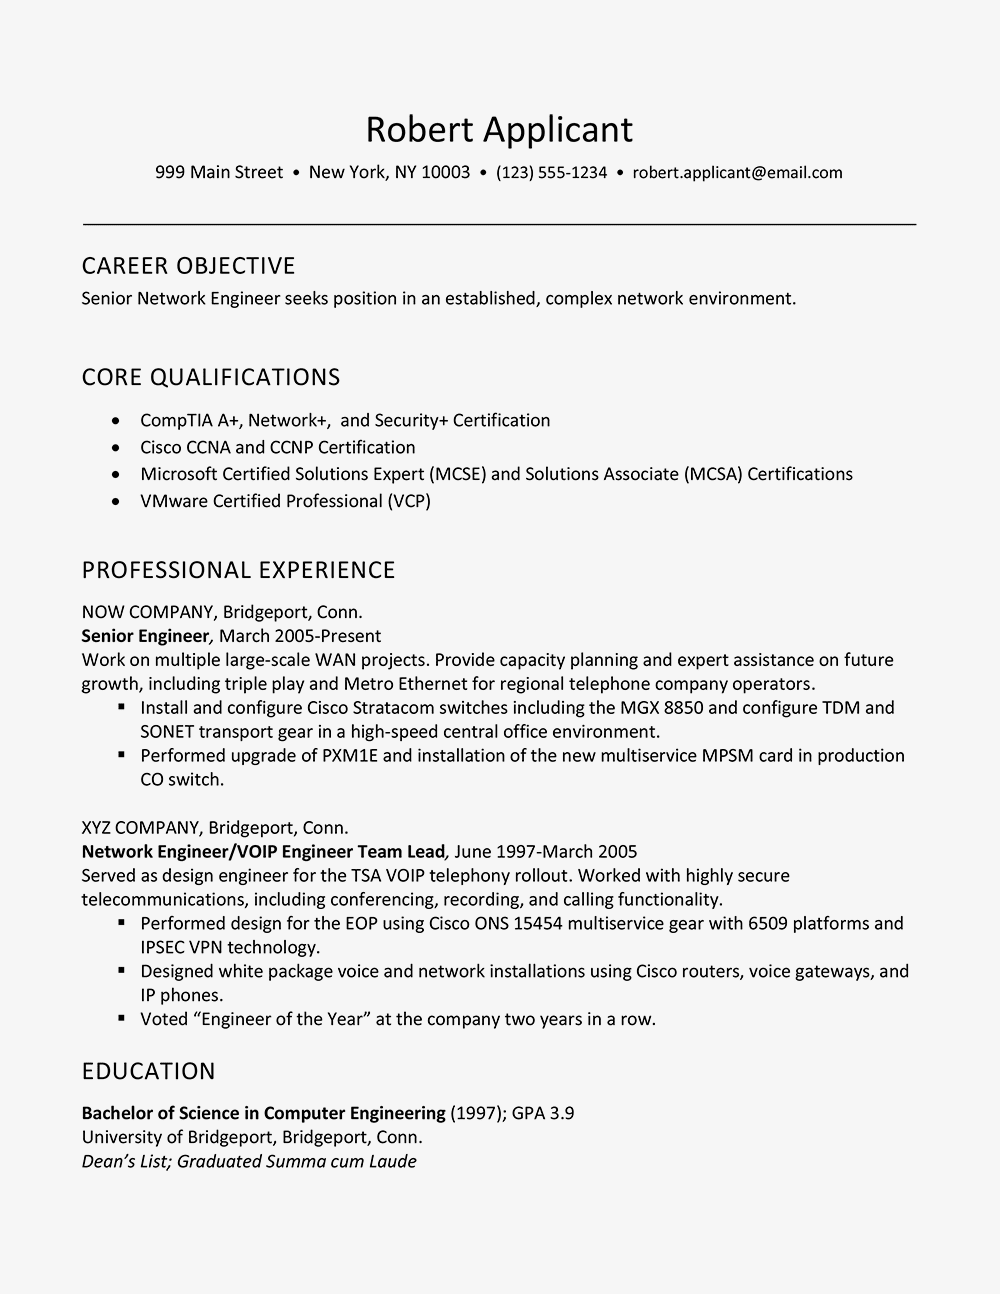 Sample Resume For Experienced Network Engineer